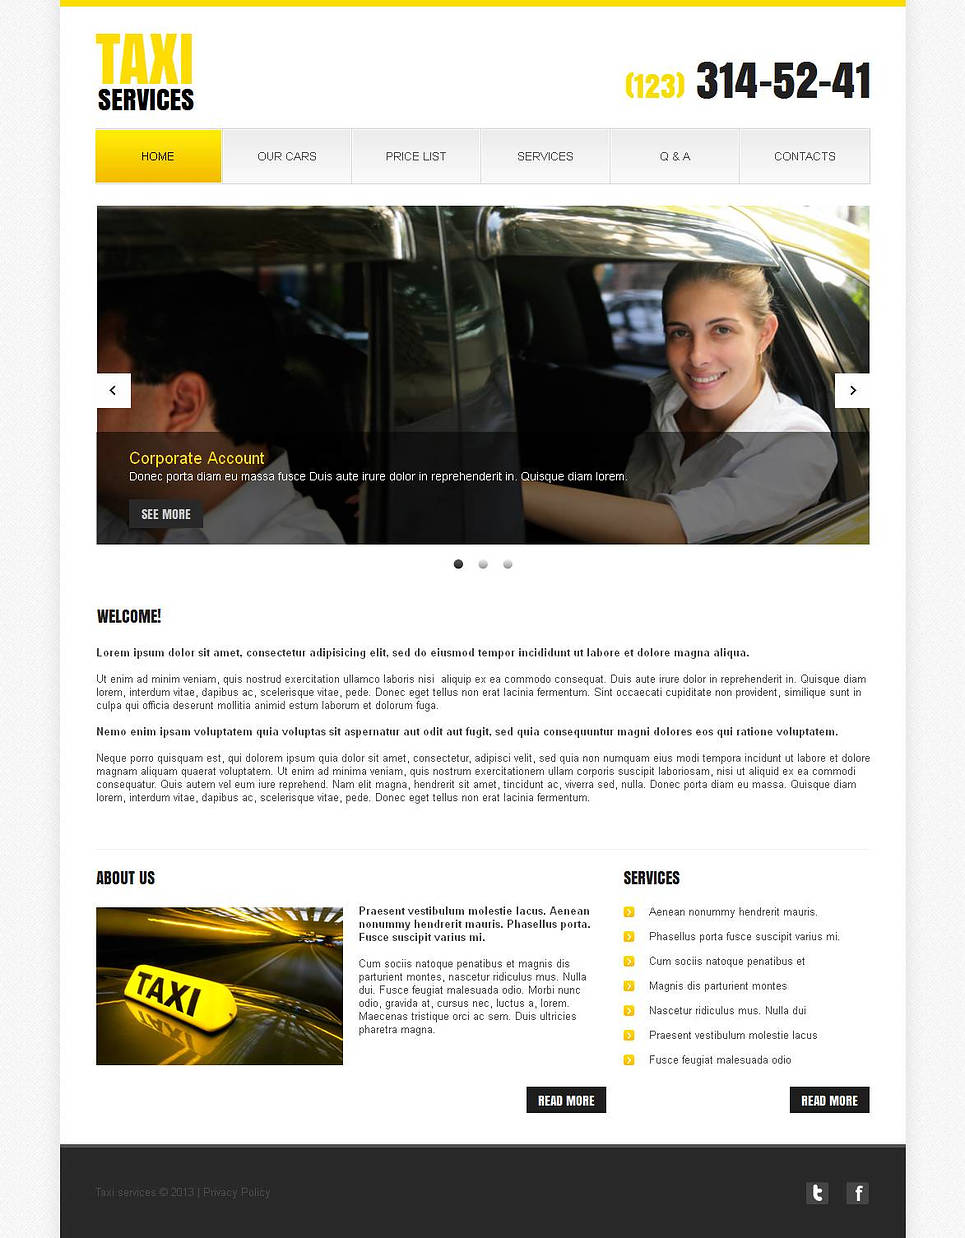 Minimalist Website Template for Taxi Services - image